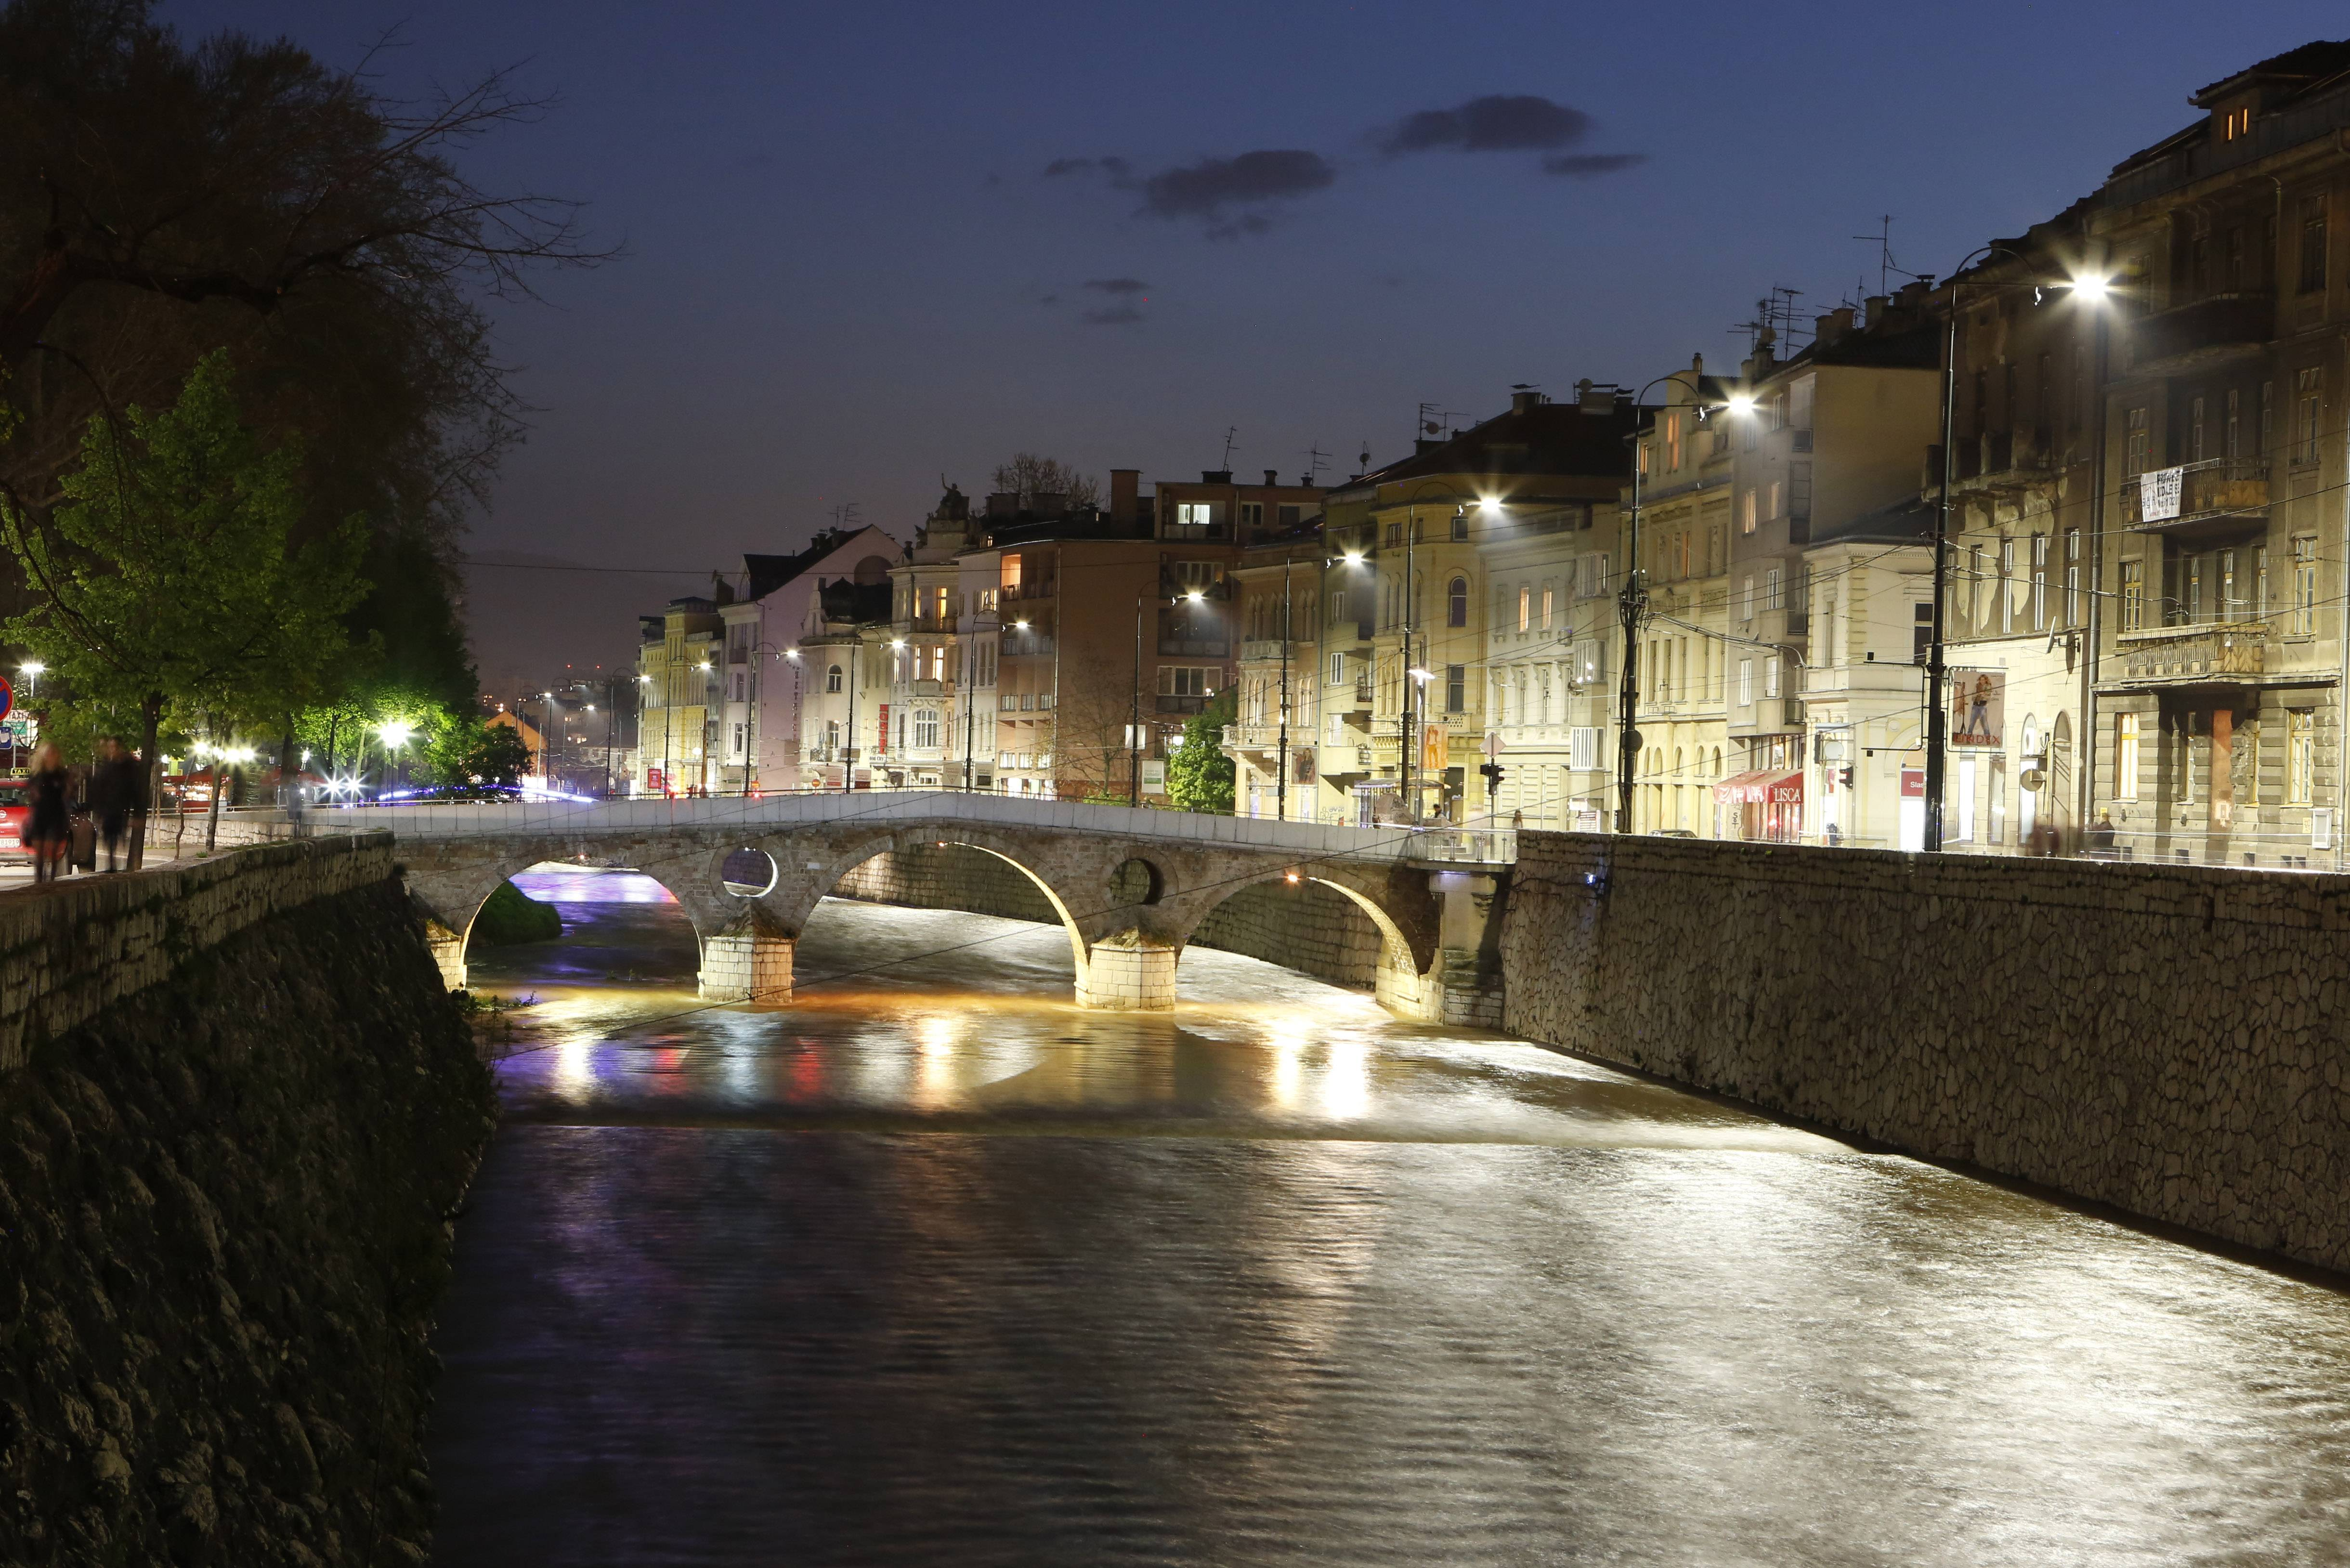 Princip Bridge and the surrounding buildings are illuminated at night in Sarajevo, Bosnia-Herzegovina.